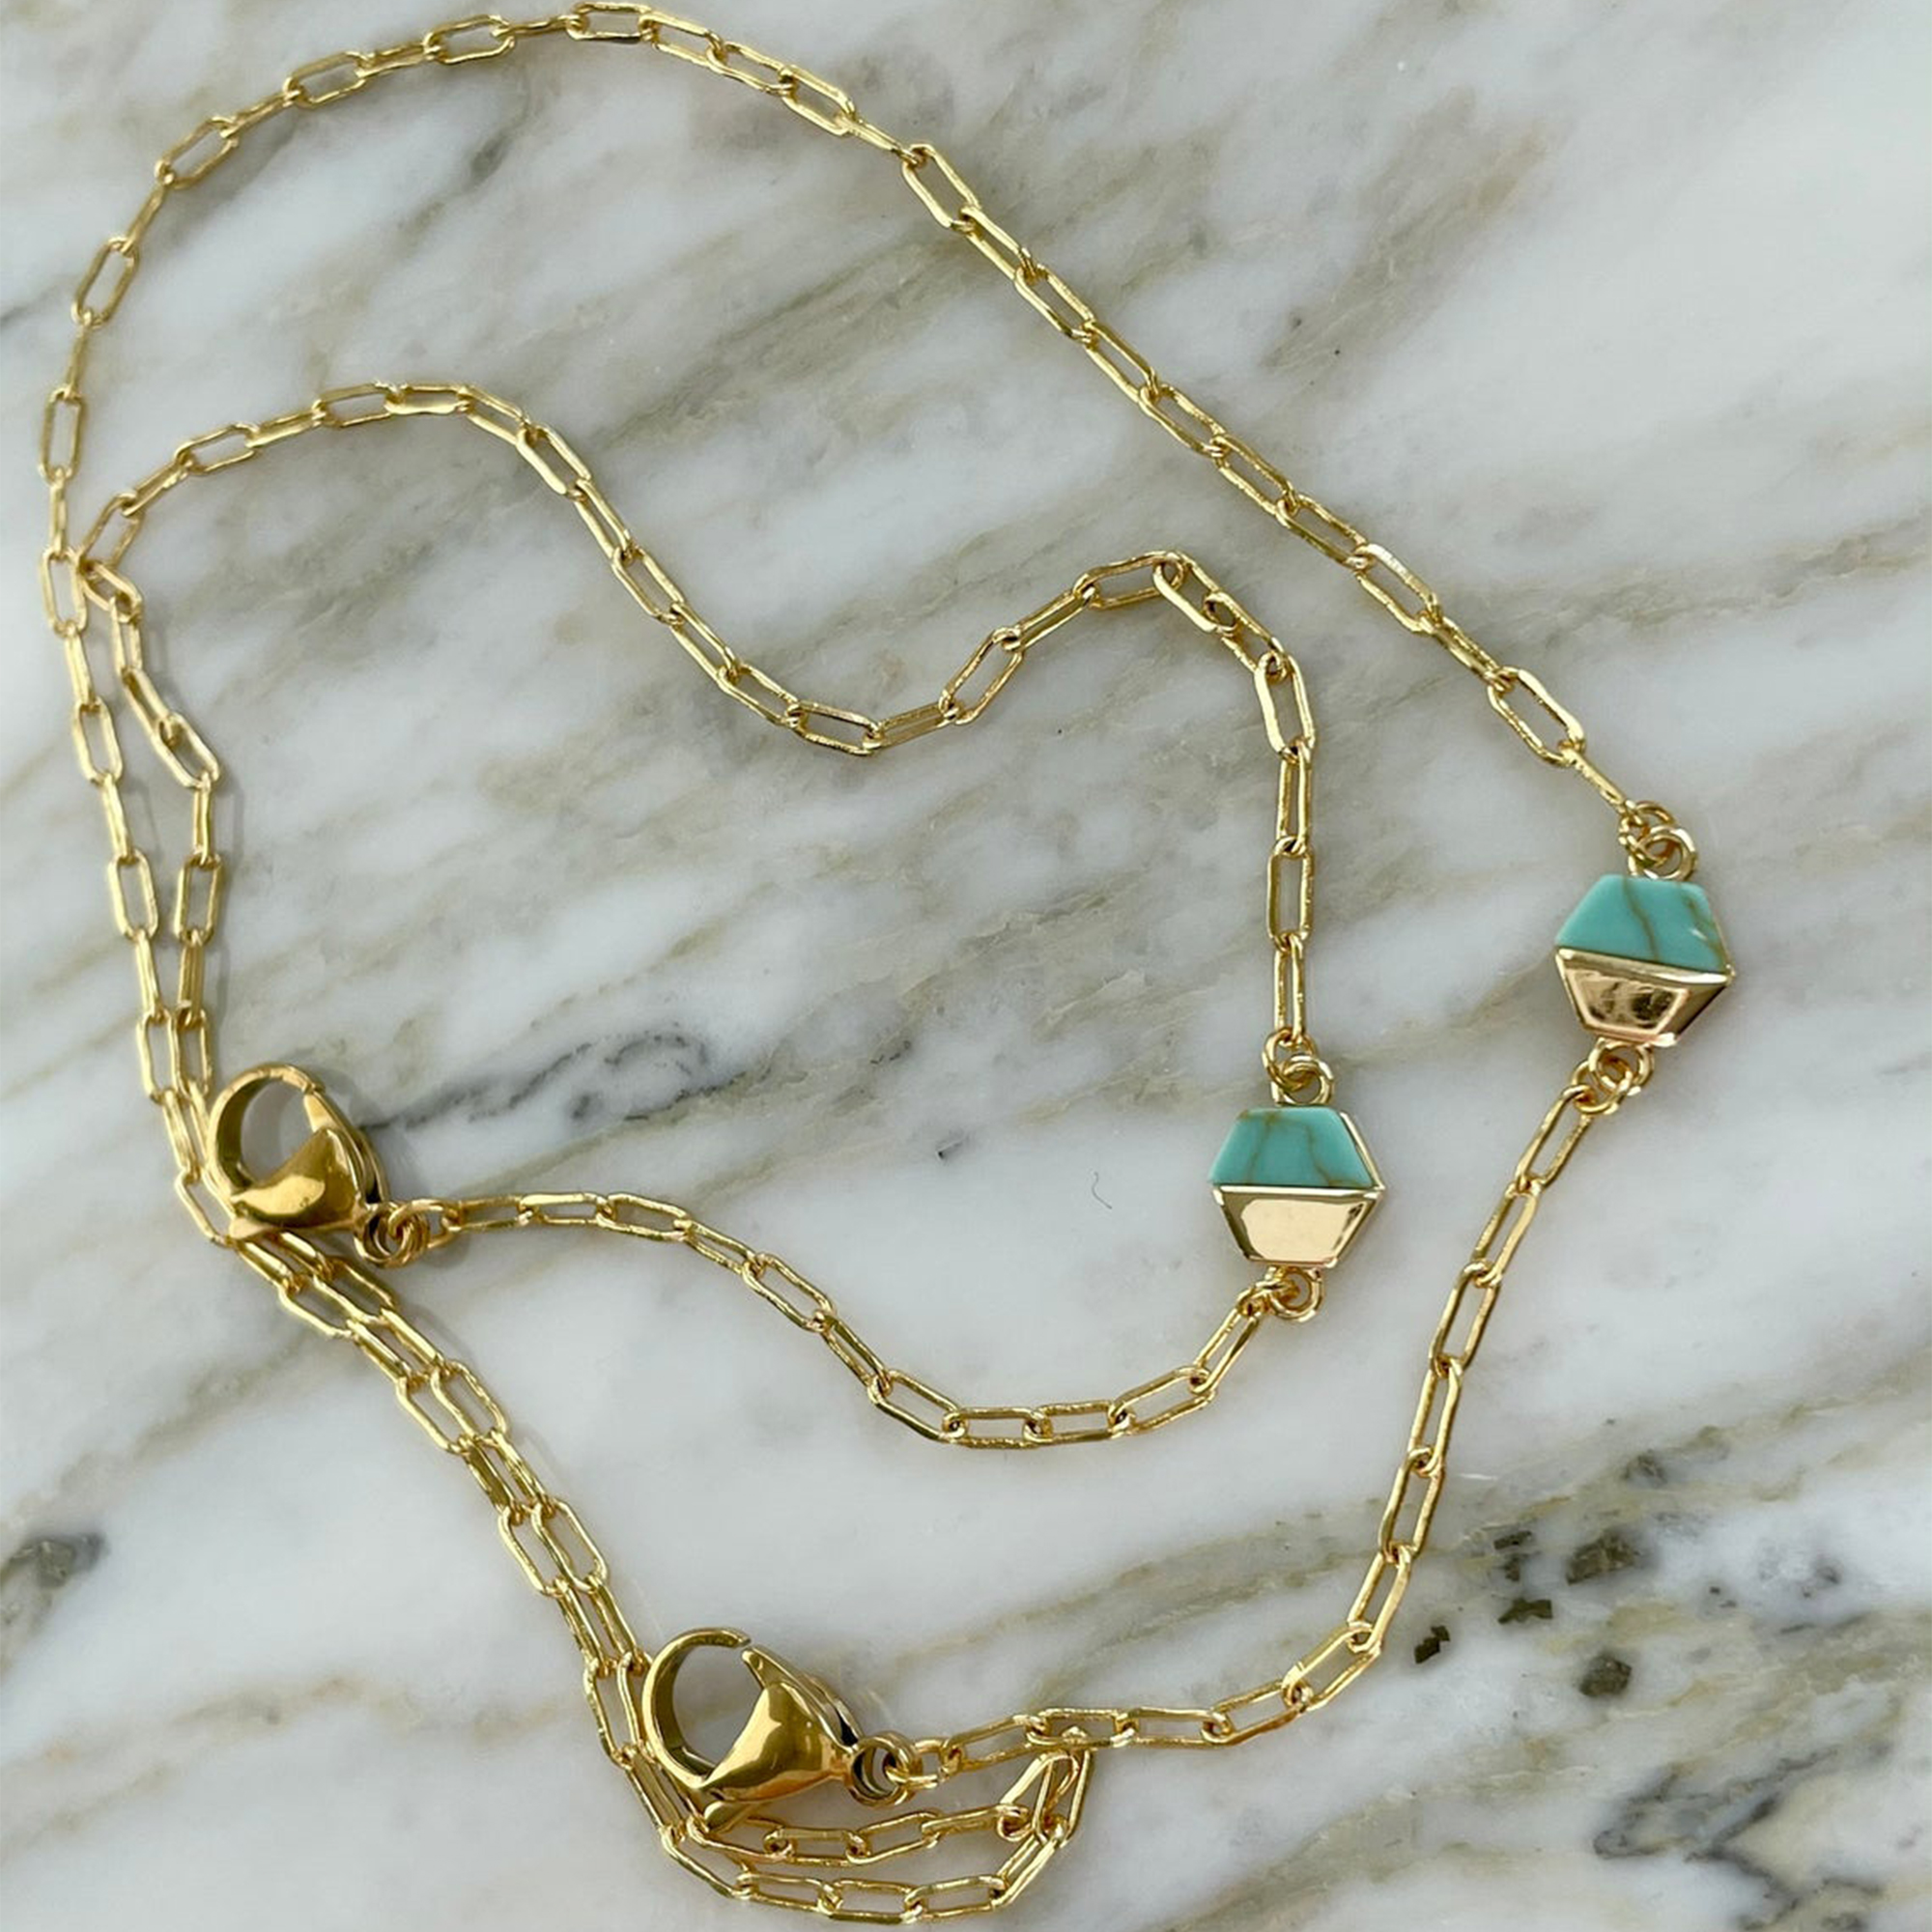 ShopHeartmade - 18k Gold Plated Turquoise Chain Face Mask Lanyard, Mask Necklace, Face Mask Chain, Face Mask Holder, Mask Chain, Mask Lanyard, Mask Strap